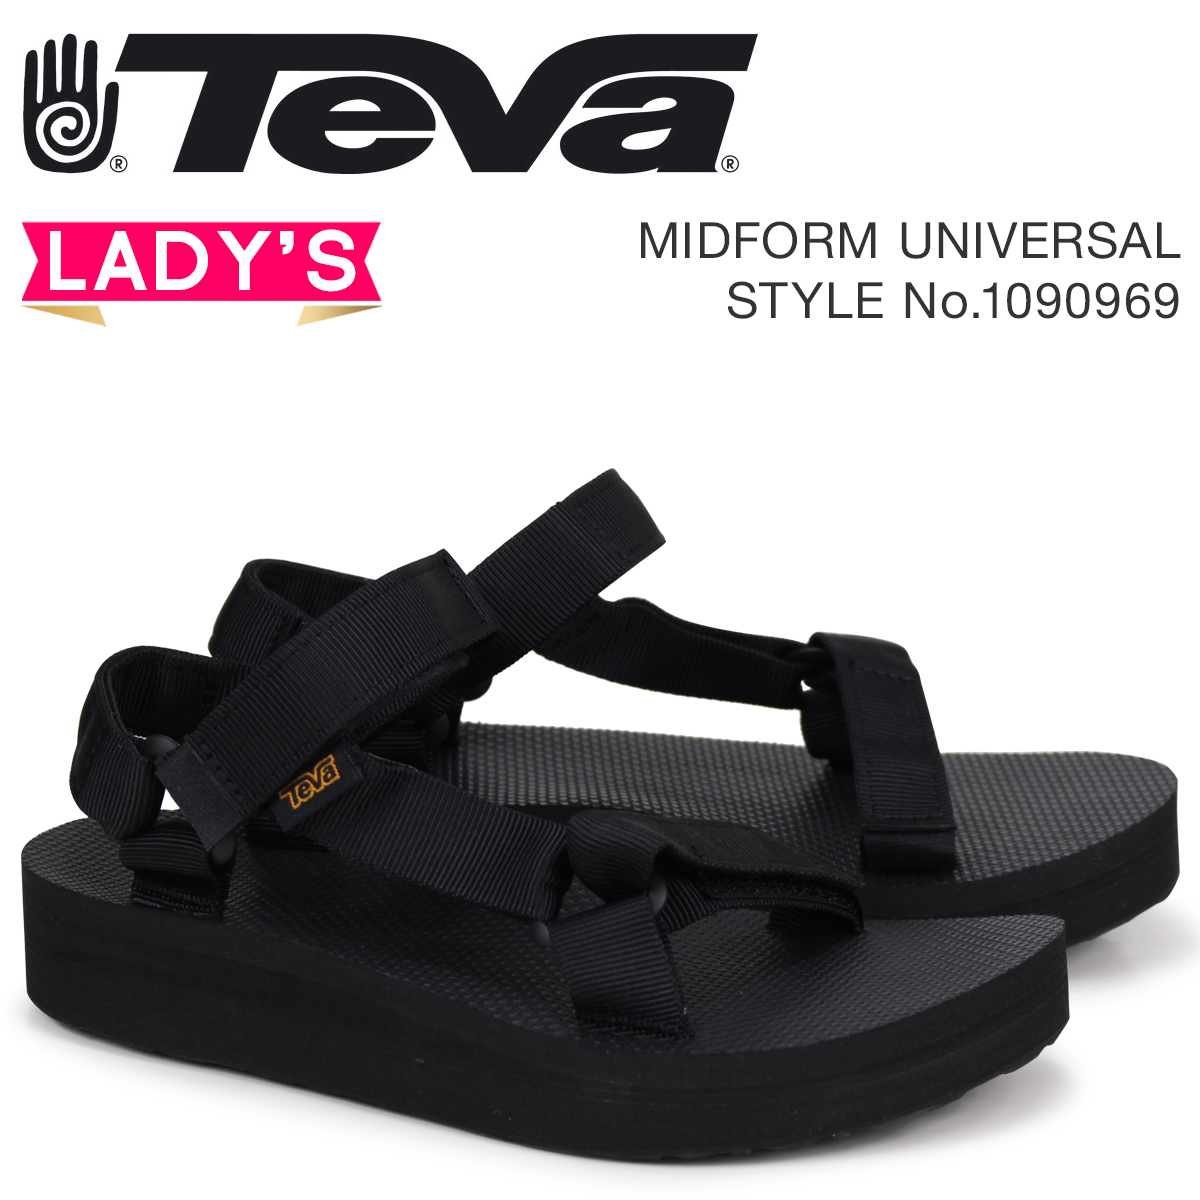 Lady's Sandals Form Mid Universal Sneak ShopTeva Online lu31cJTFK